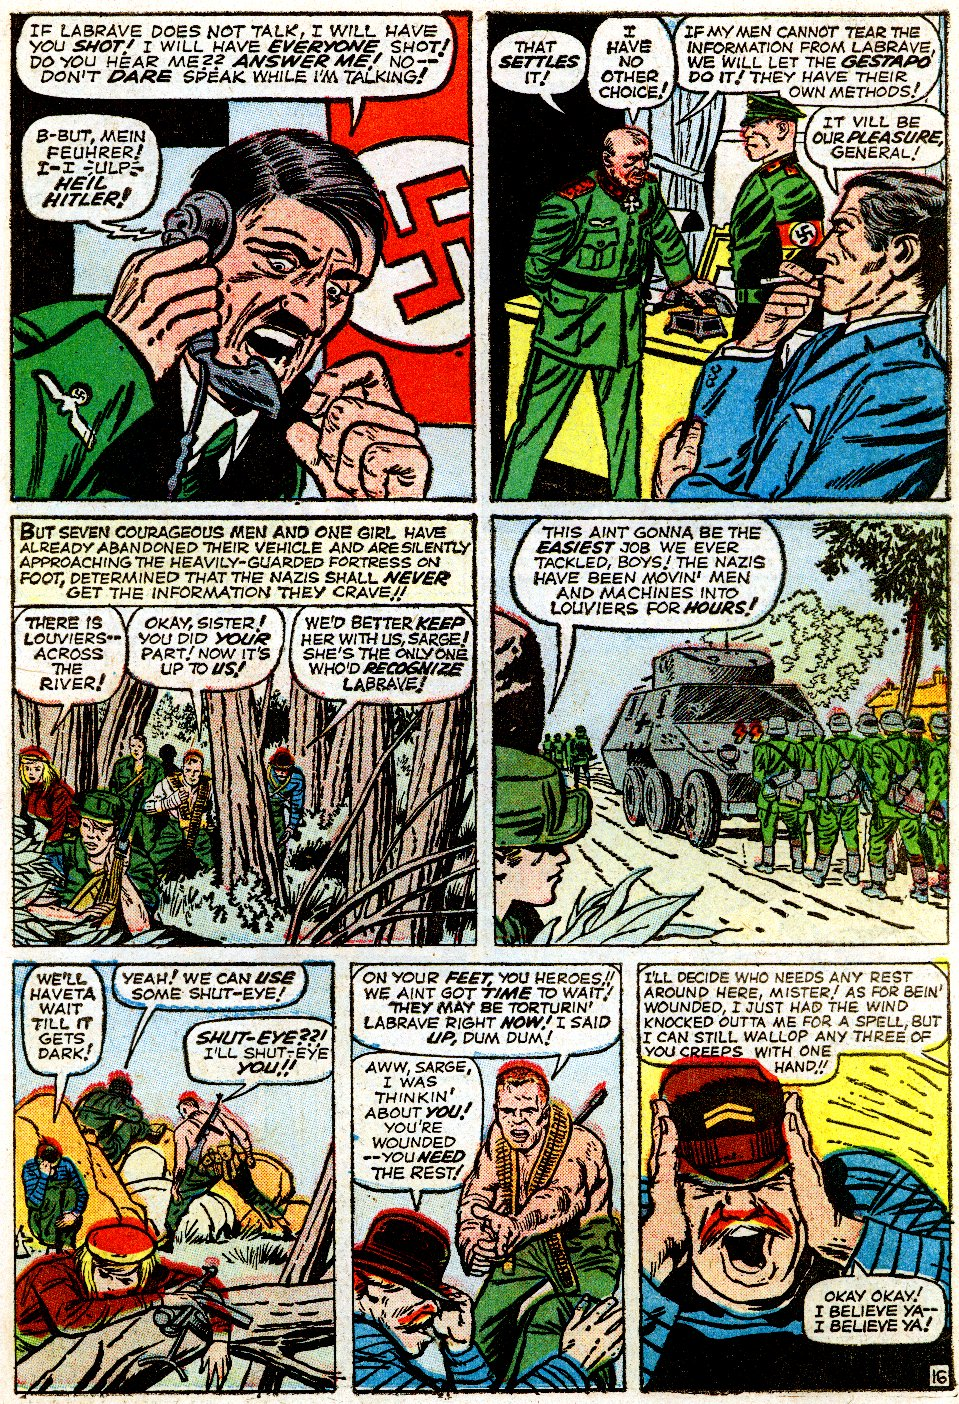 Read online Sgt. Fury comic -  Issue #1 - 23